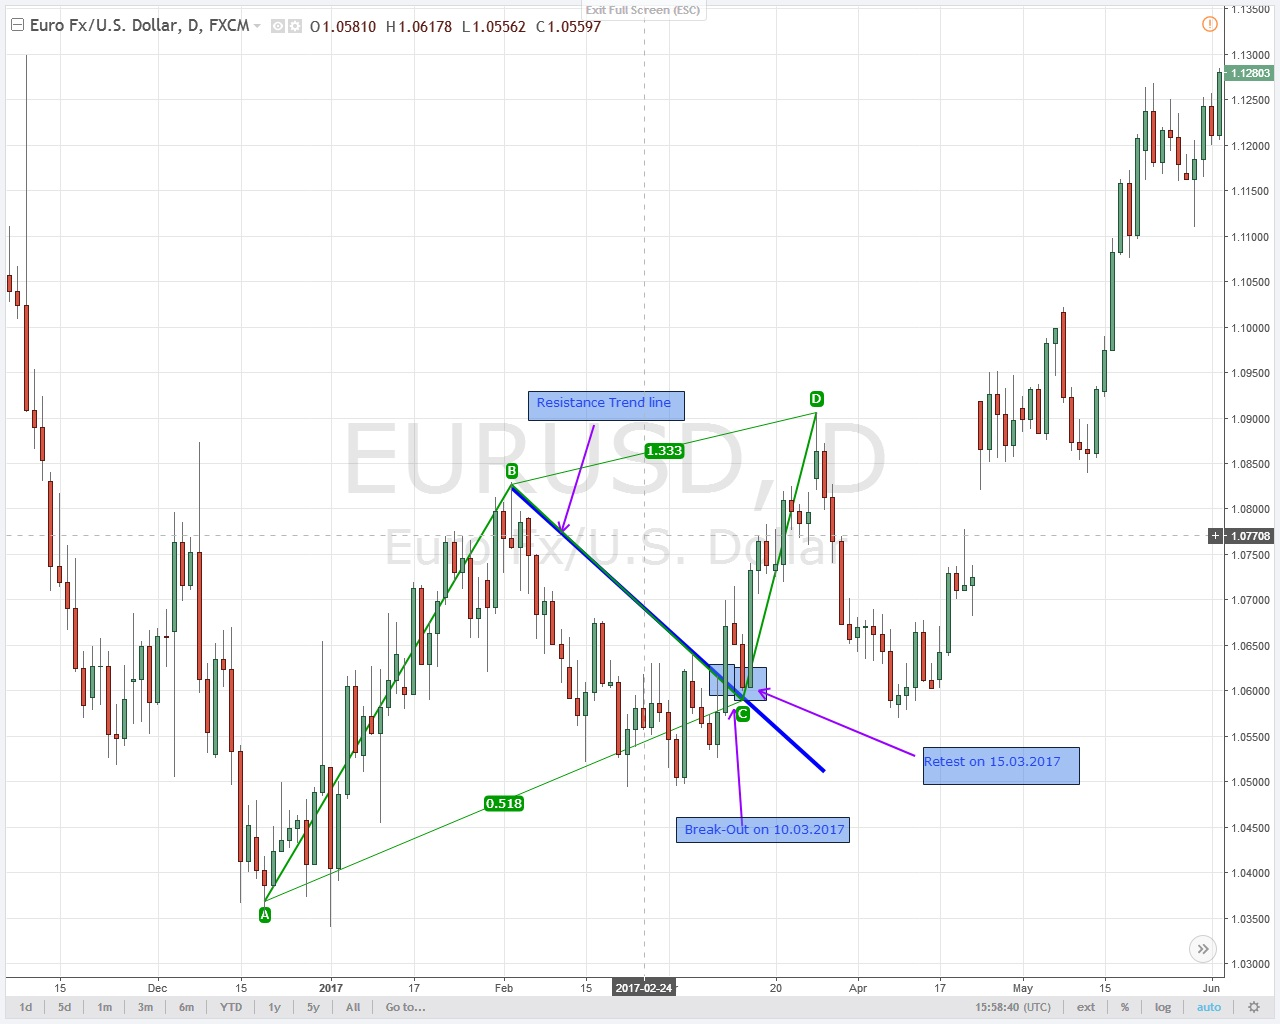 Break Out Strategie im Eur/USD